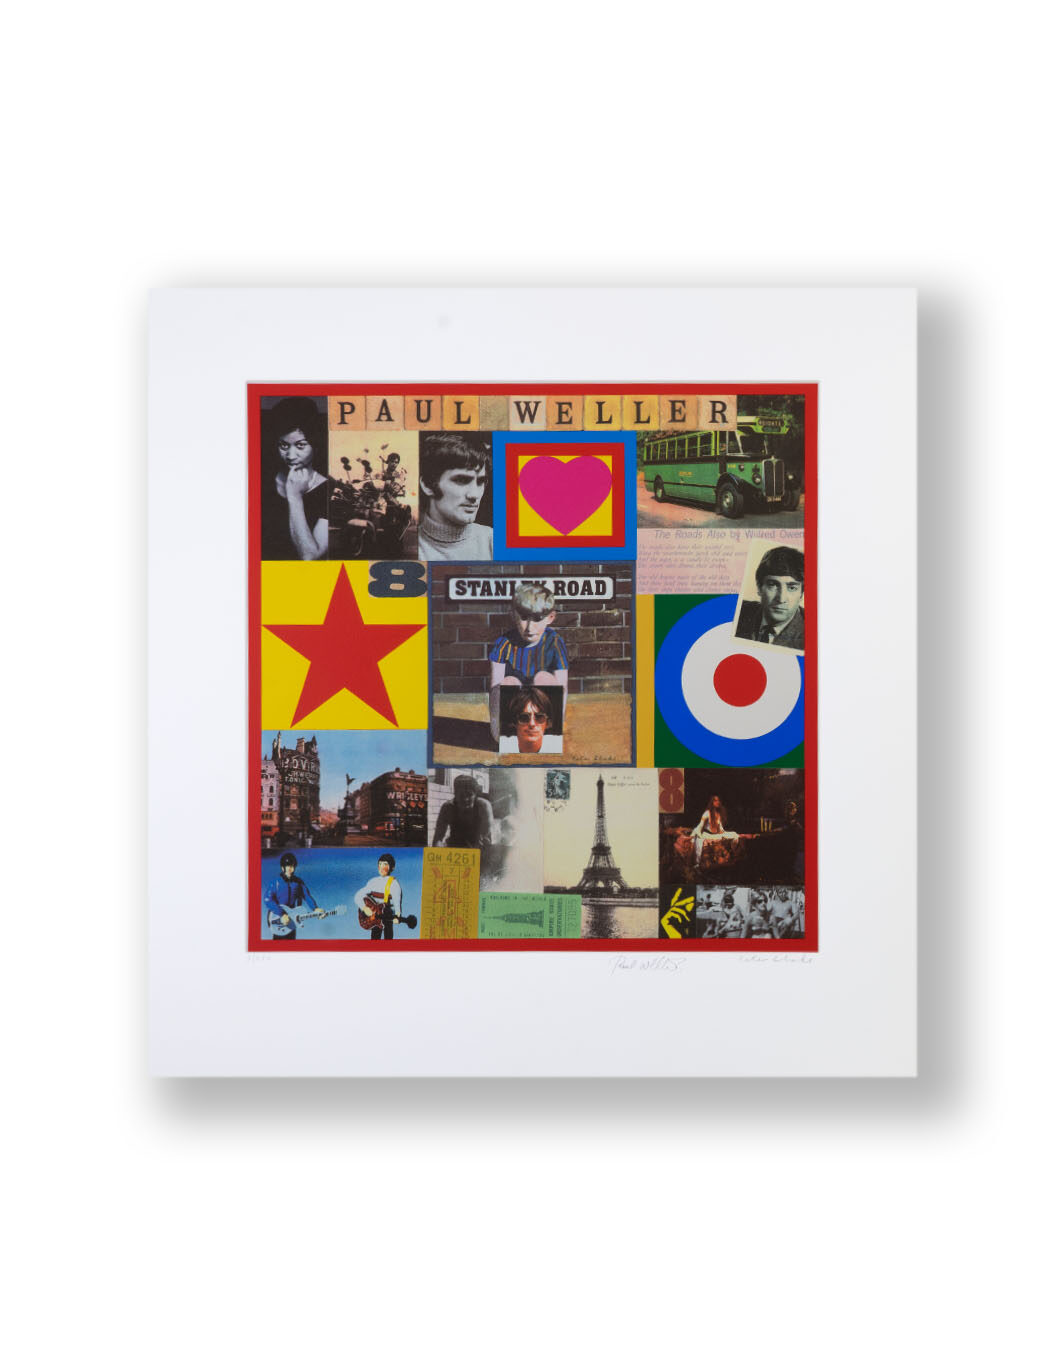 Print SIGNED BY PAUL WELLER AND PETER BLAKE